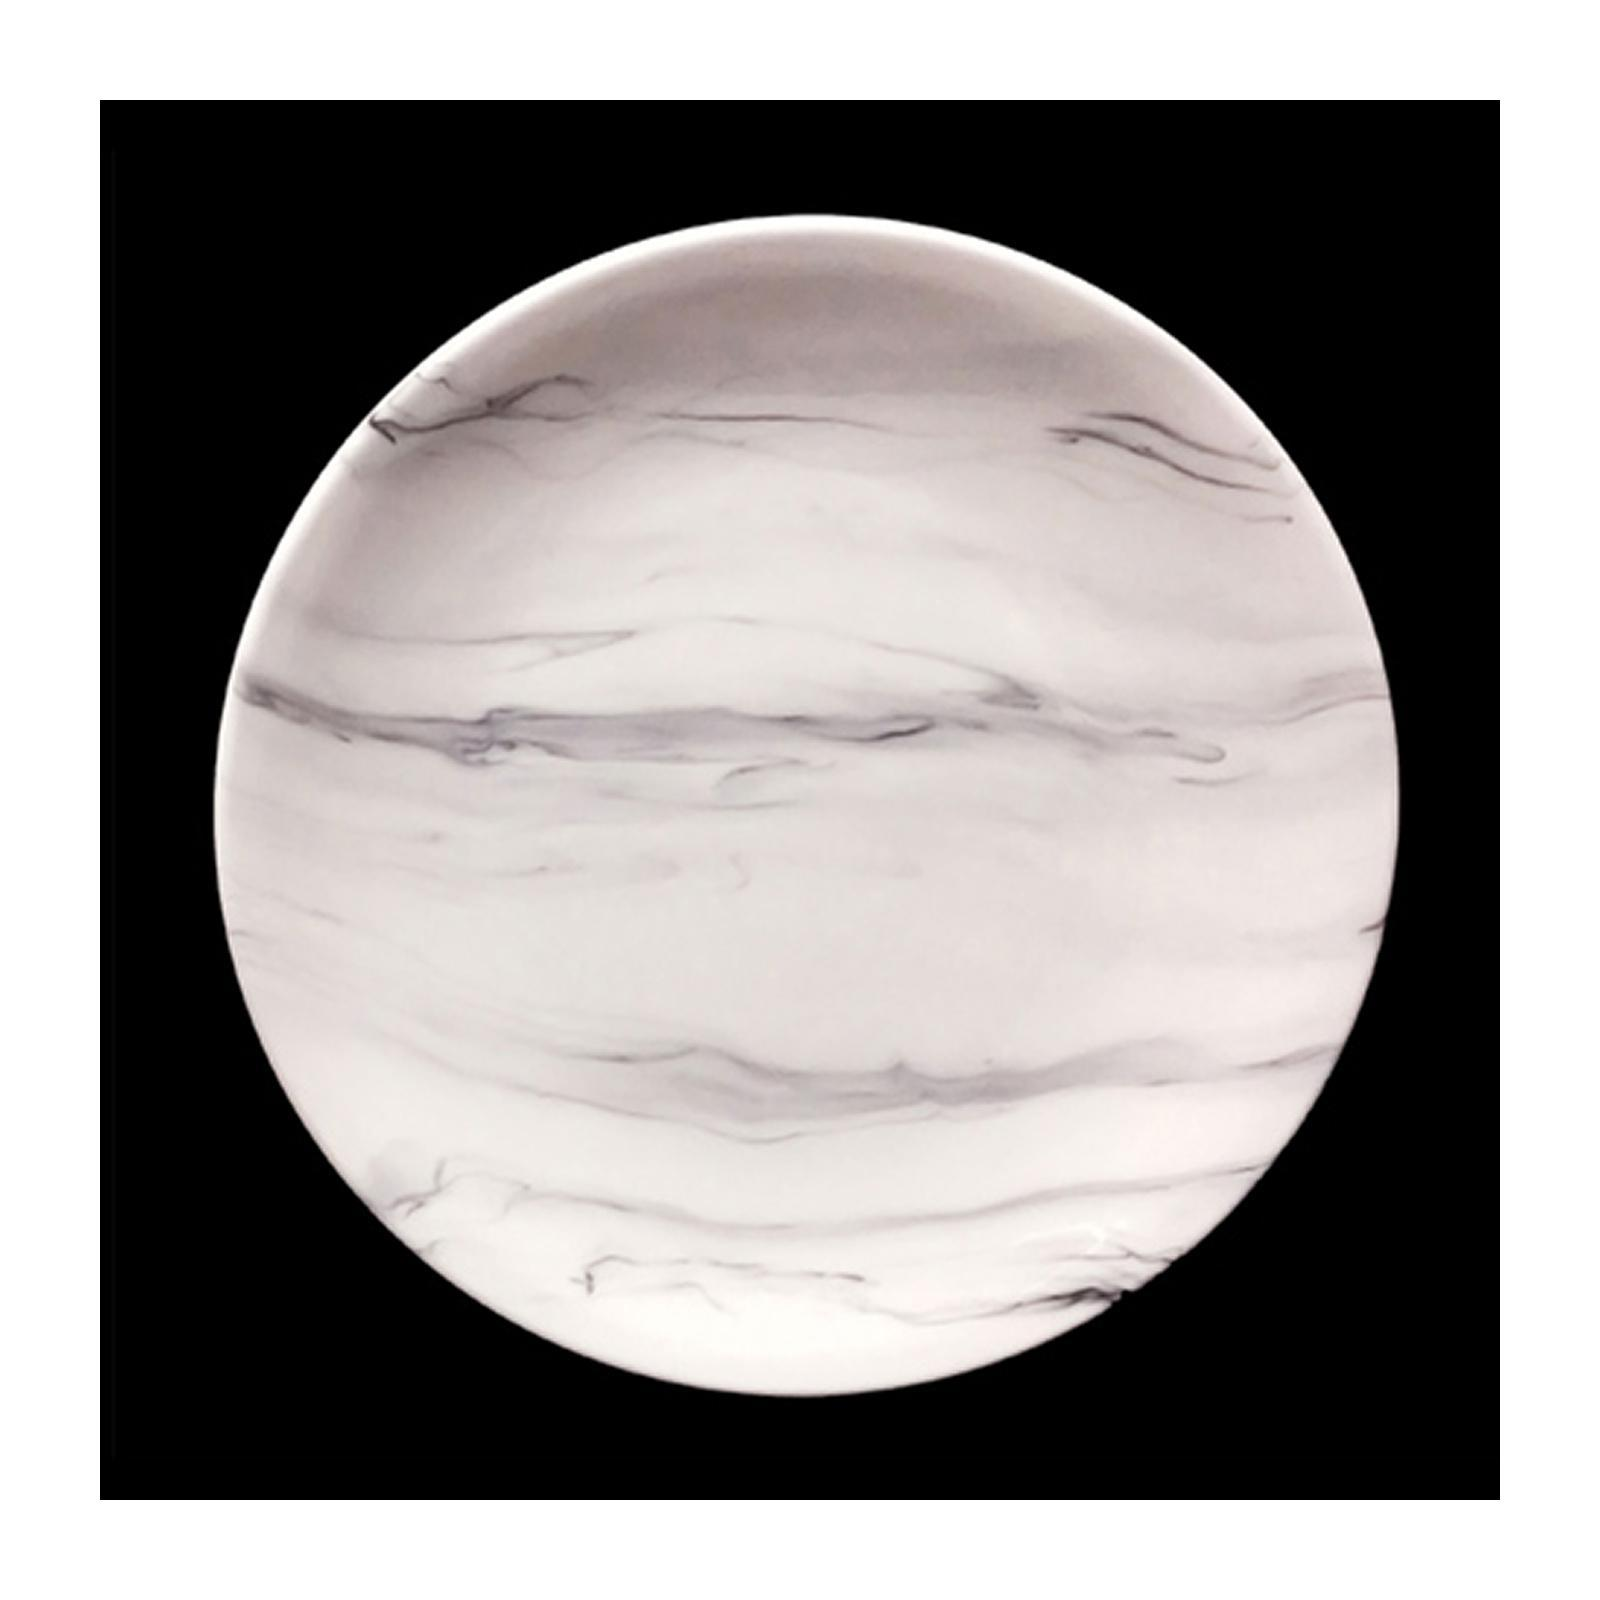 Cerabon By Petye Carrara Porcelain Round Dinner Plate 27.5 CM - By ToTT